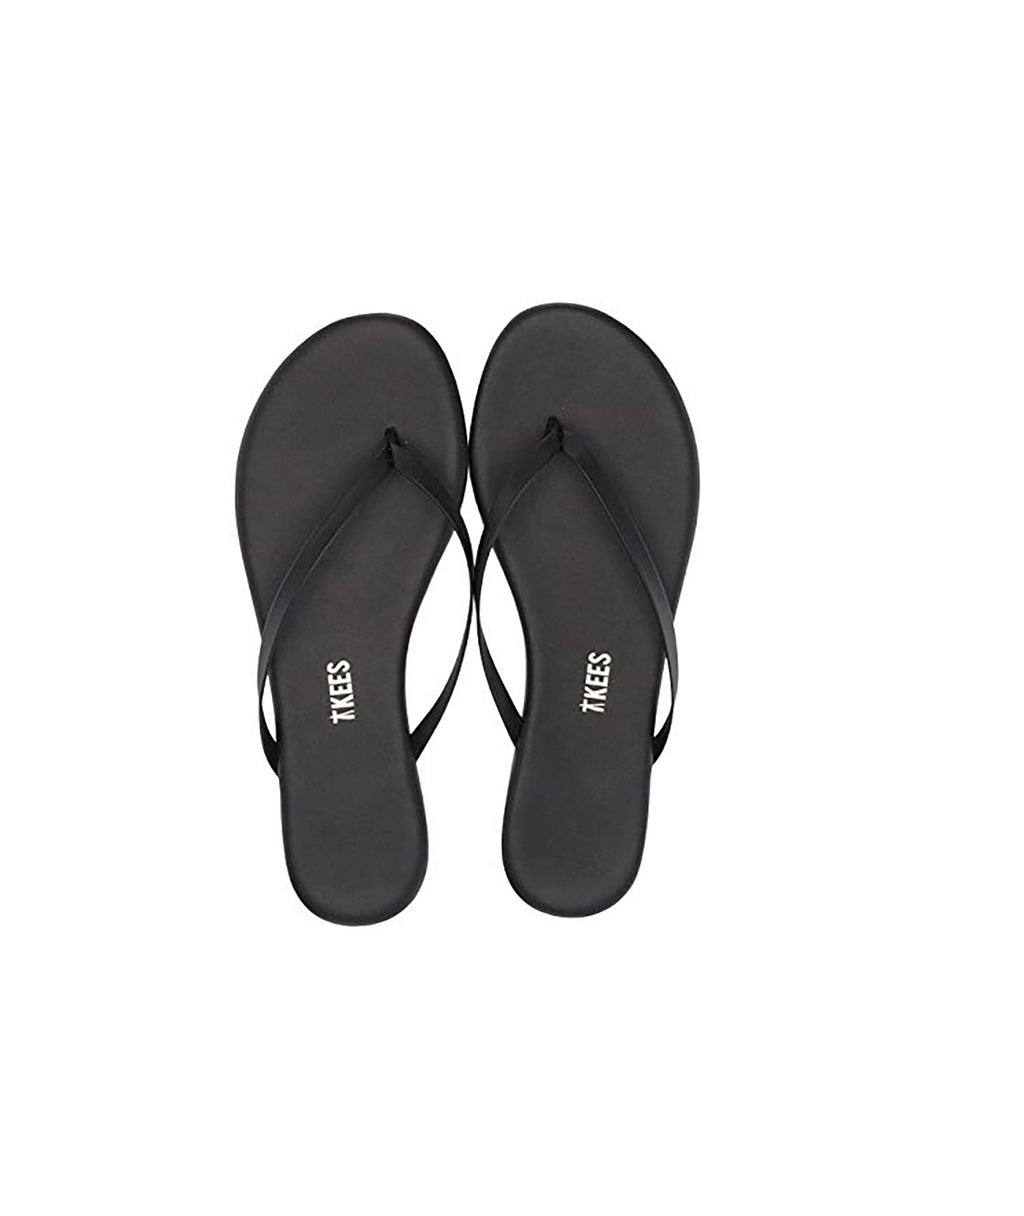 Tkees Women Flip-Flop Sable